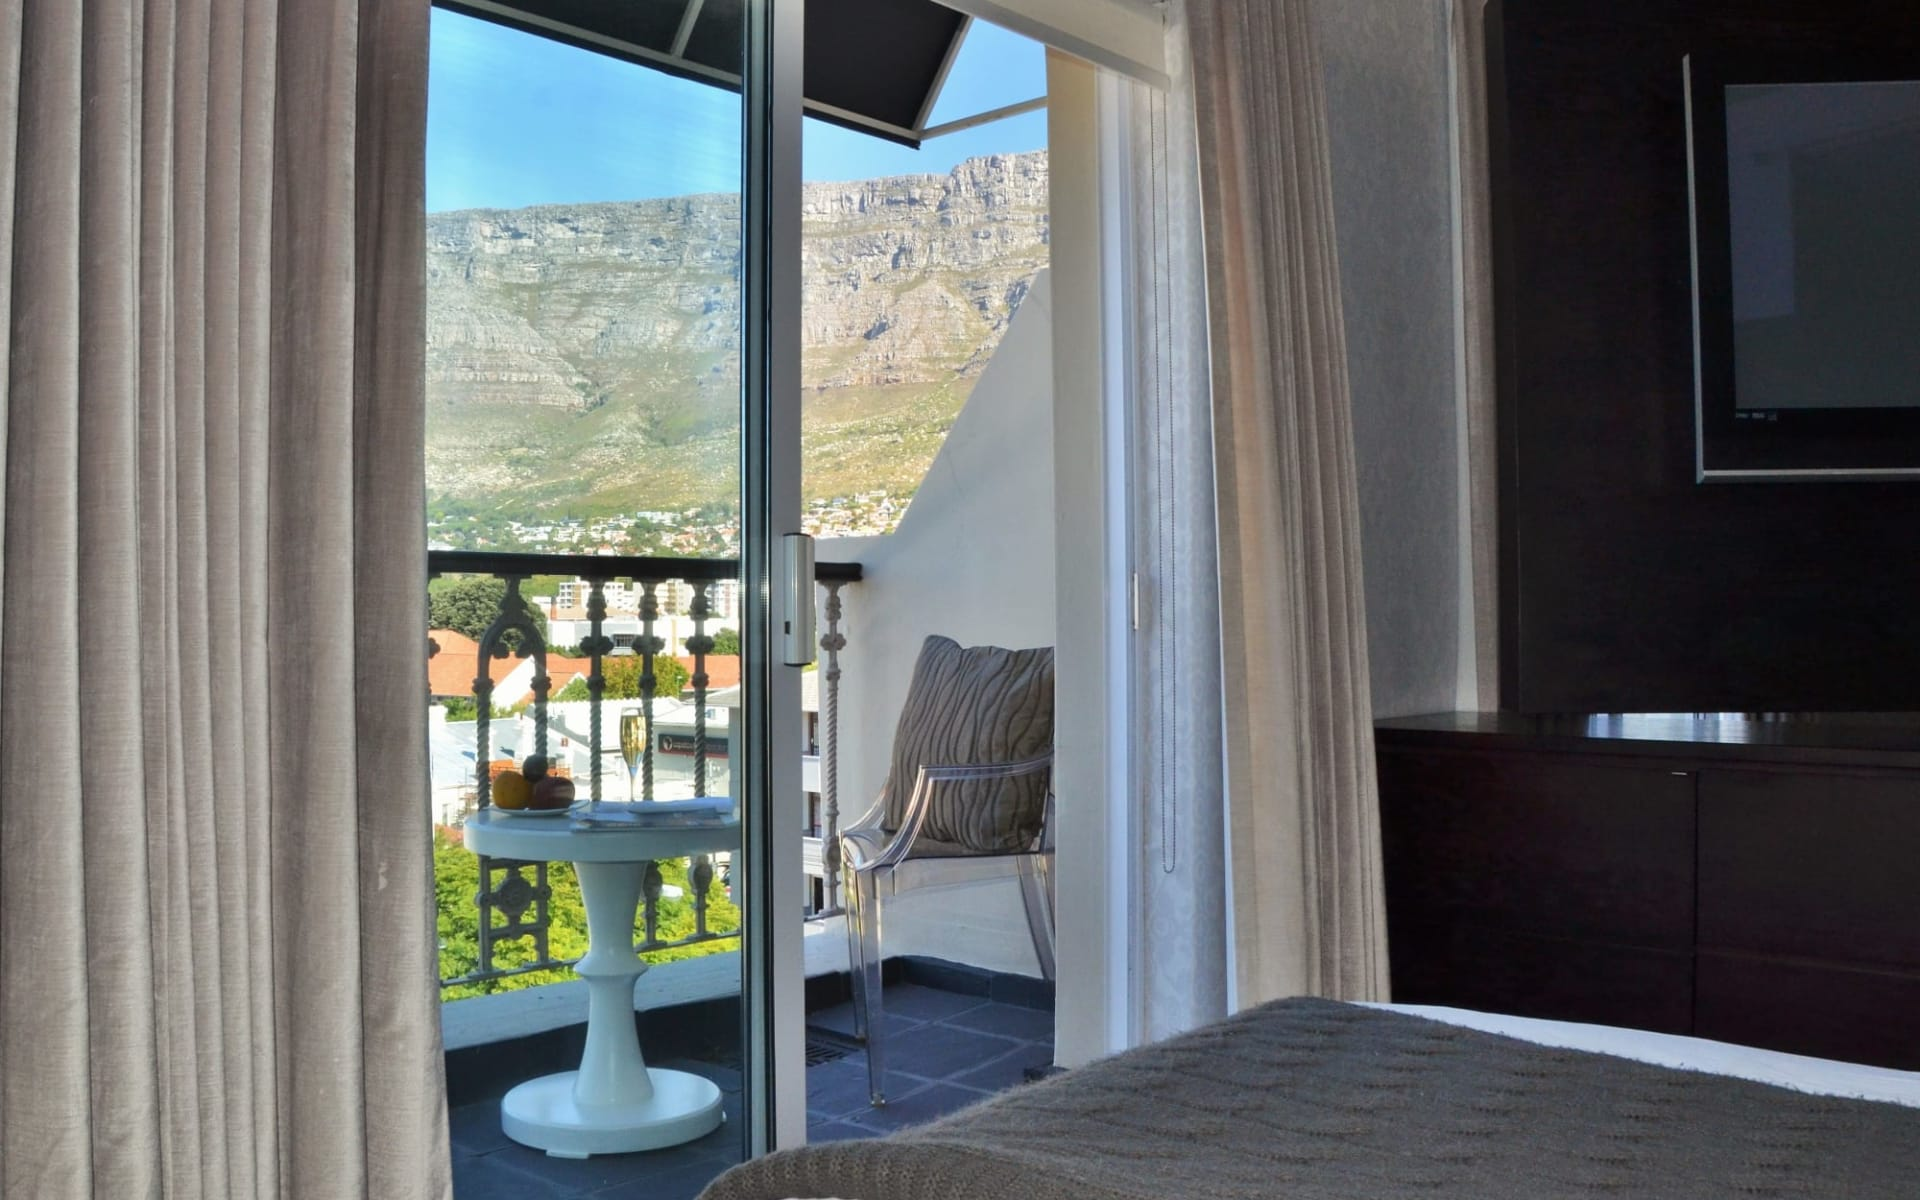 Cape Milner in Tamboerskloof:  the_cape_milner_-_room_suite_1